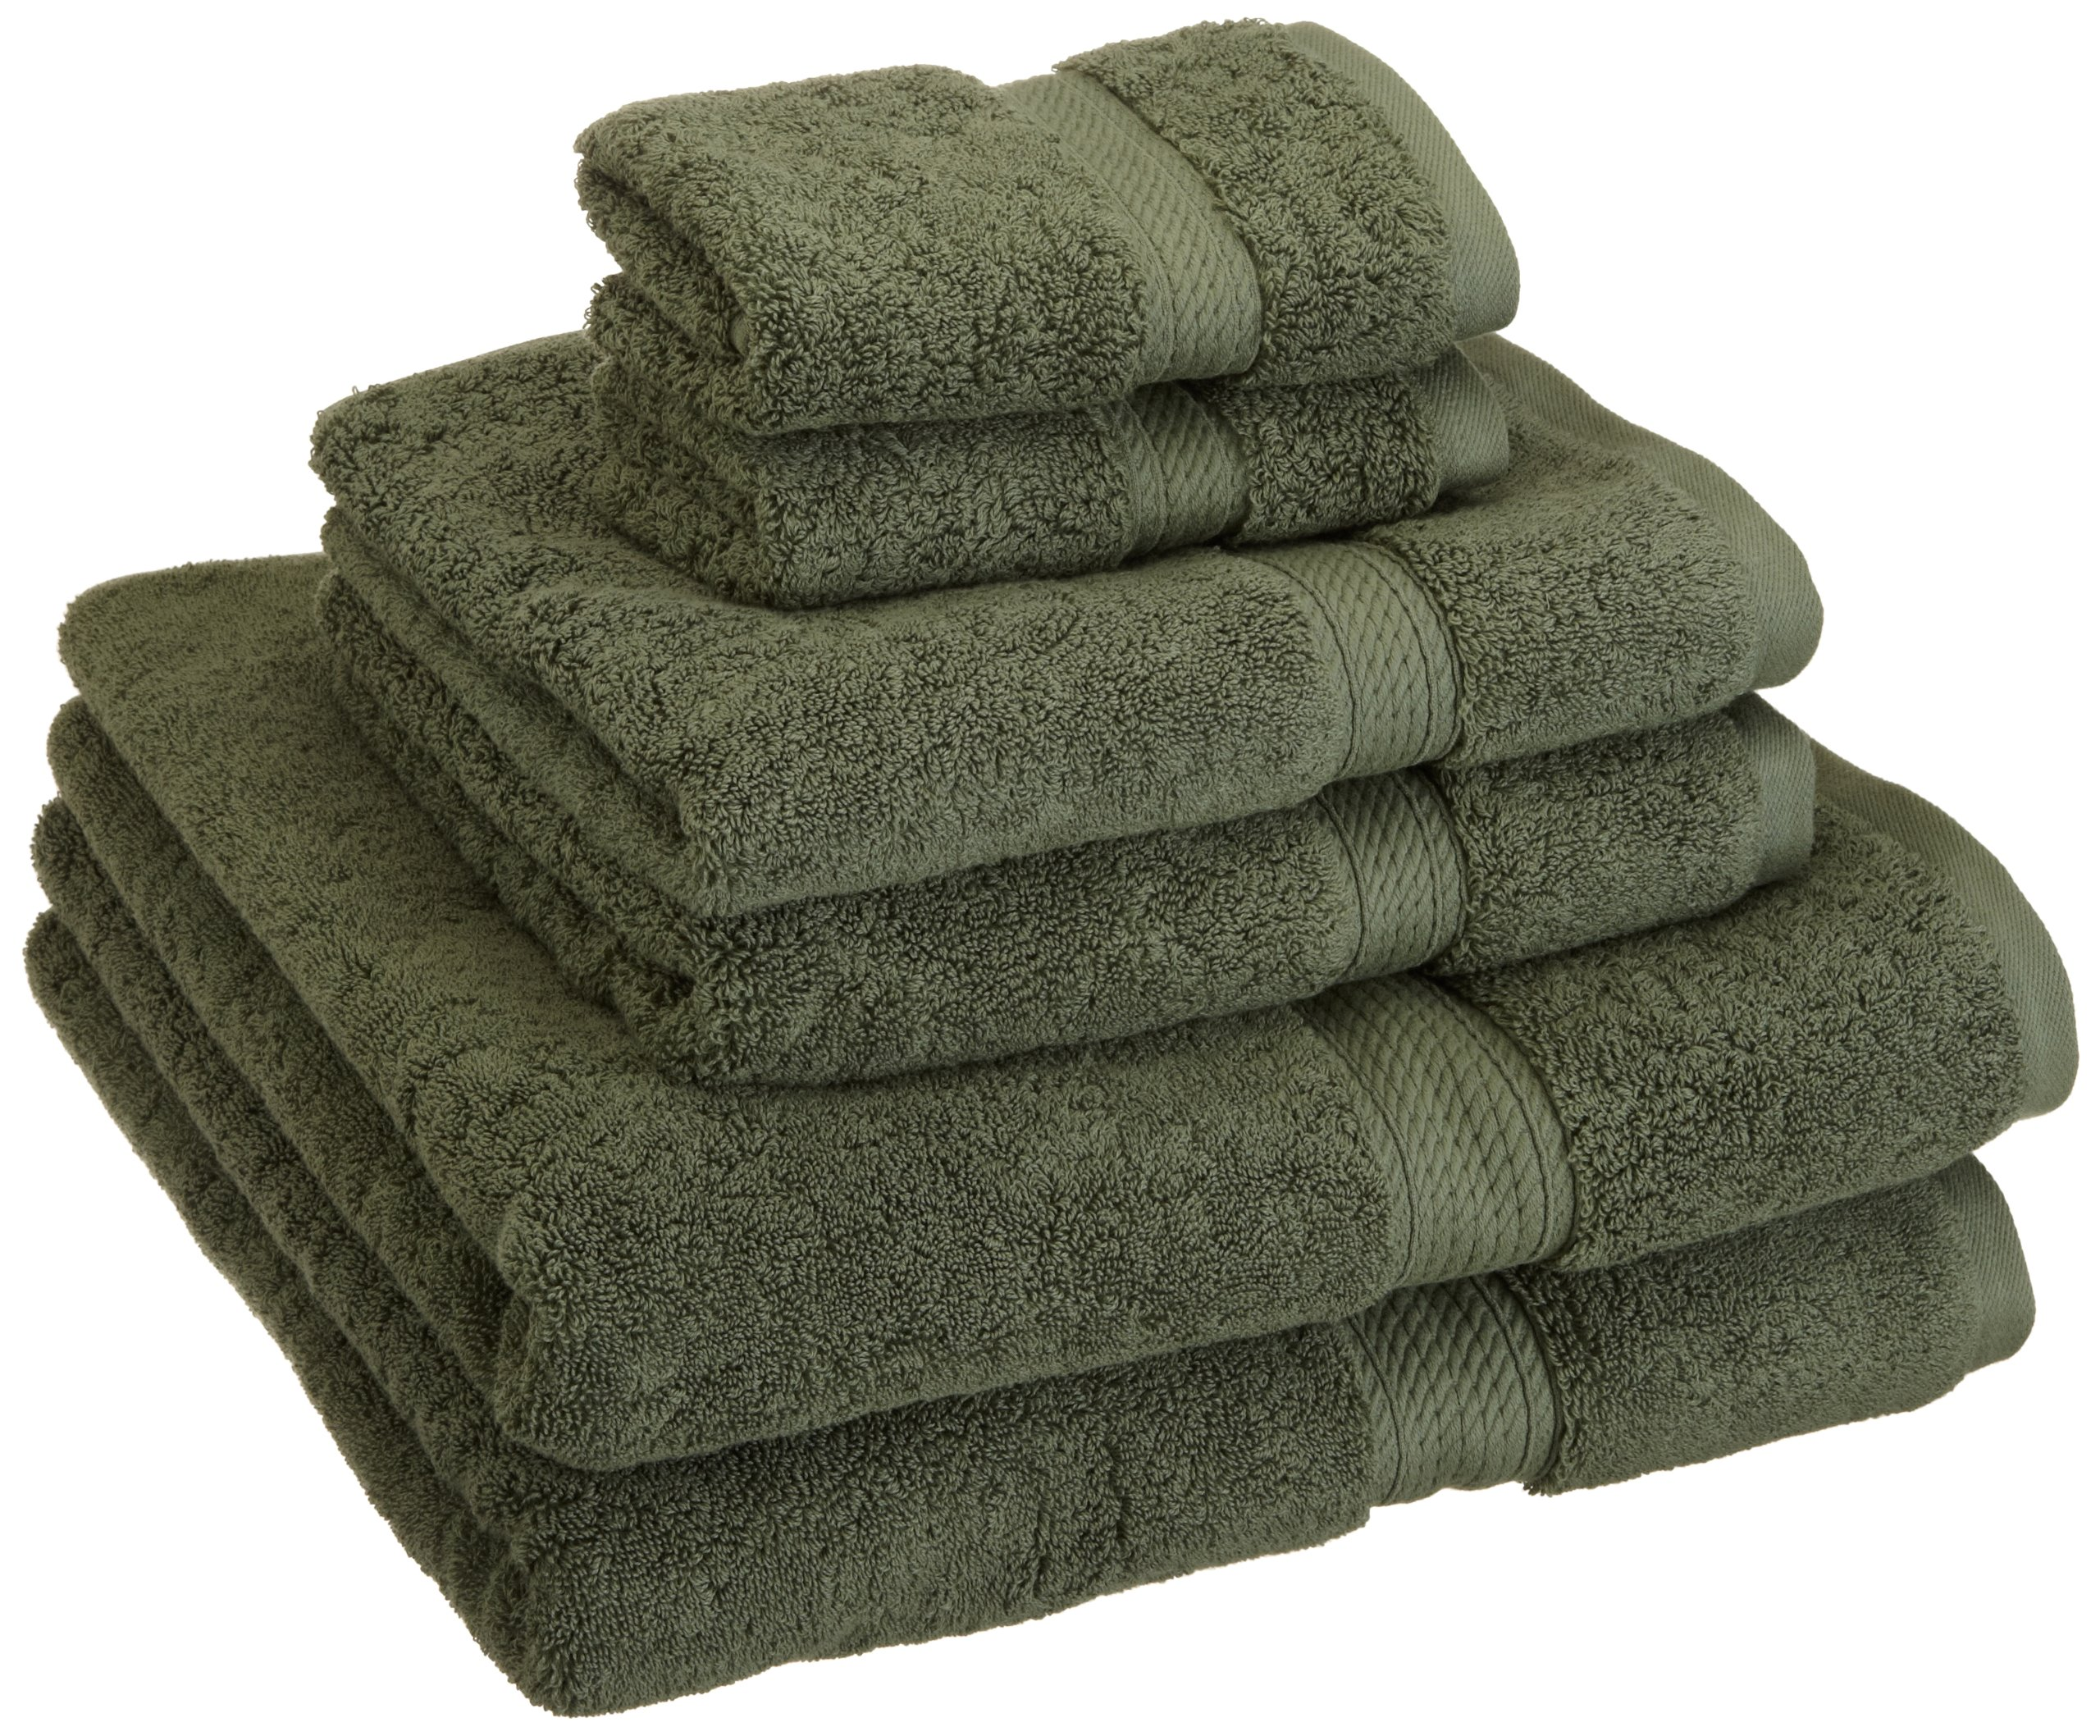 Superior 900 GSM Luxury Bathroom 6-Piece Towel Set, Made of 100% Premium Long-Staple Combed Cotton, 2 Hotel & Spa Quality Washcloths, 2 Hand Towels, and 2 Bath Towels - Forest Green